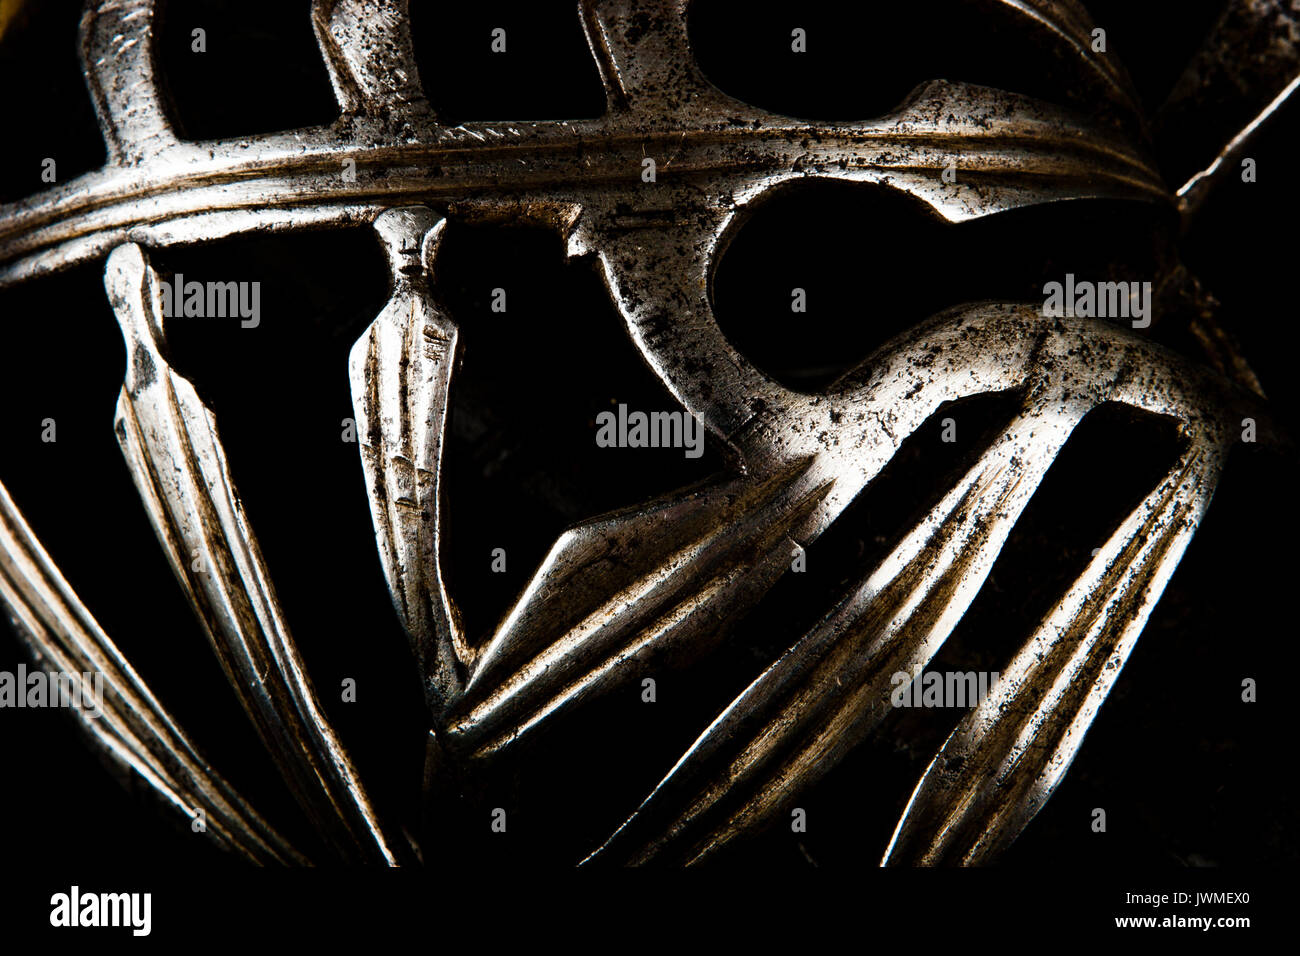 High contrast close-up image of antique Italian sword hilt components against a black background - Stock Image